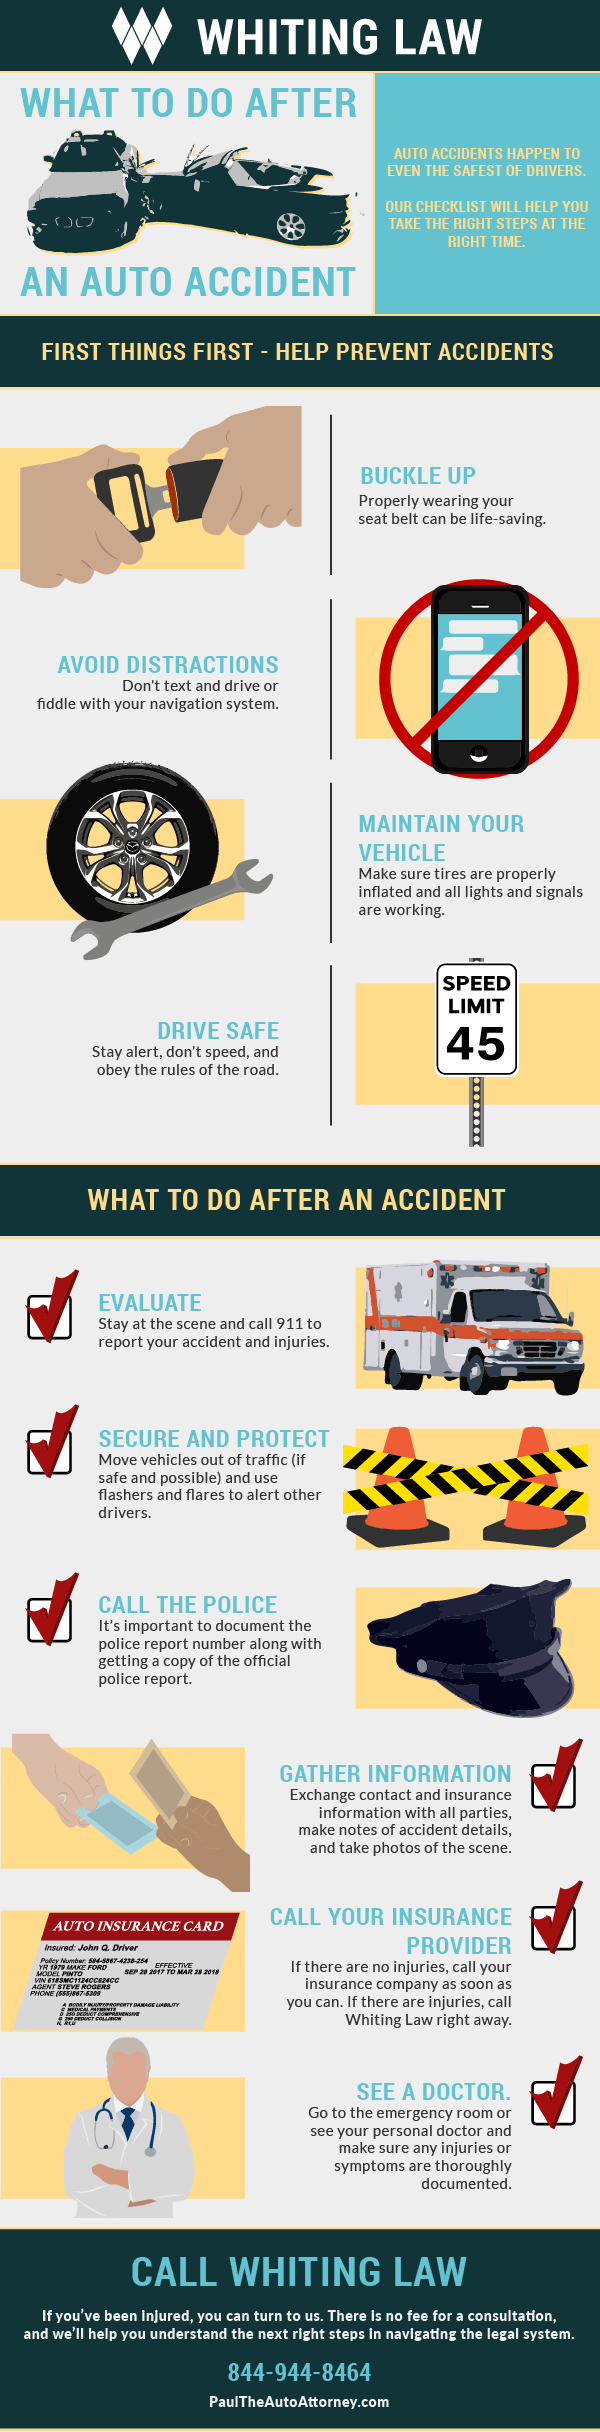 WL-accident-infographic